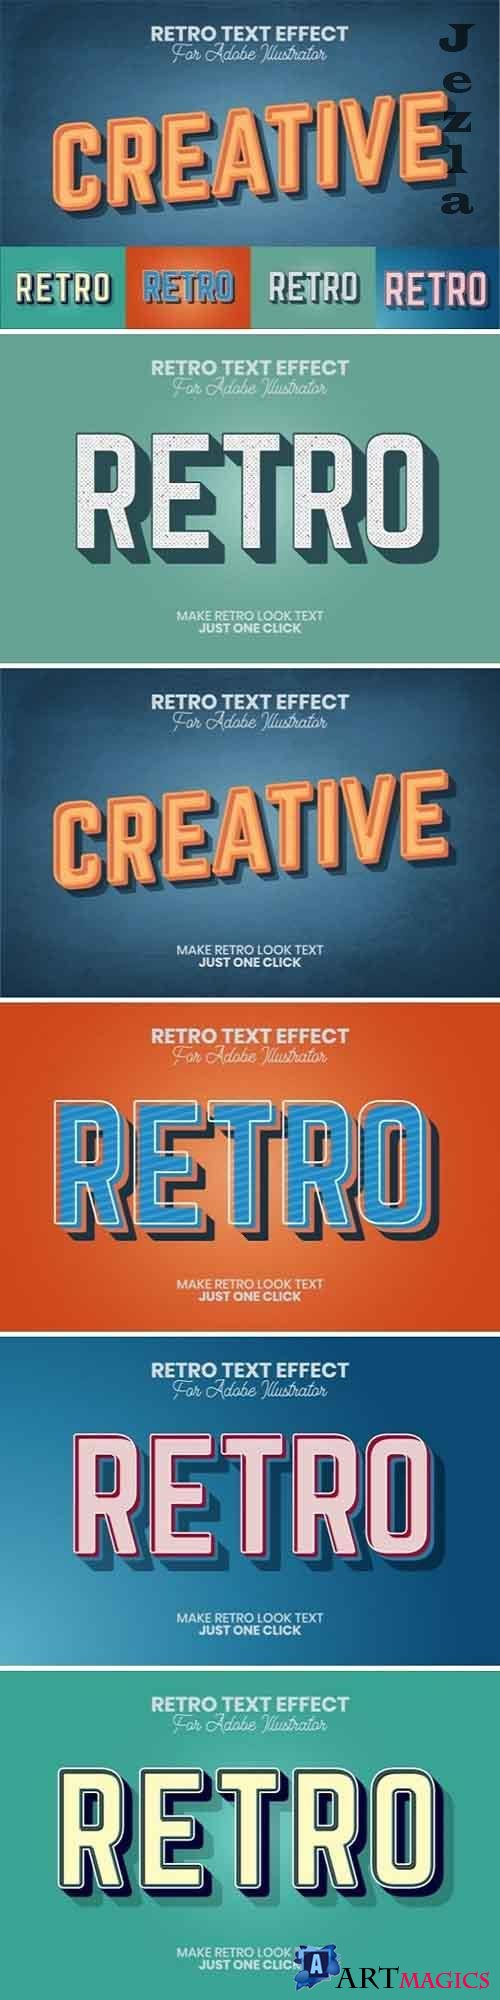 Retro Text Effect for Illustrator